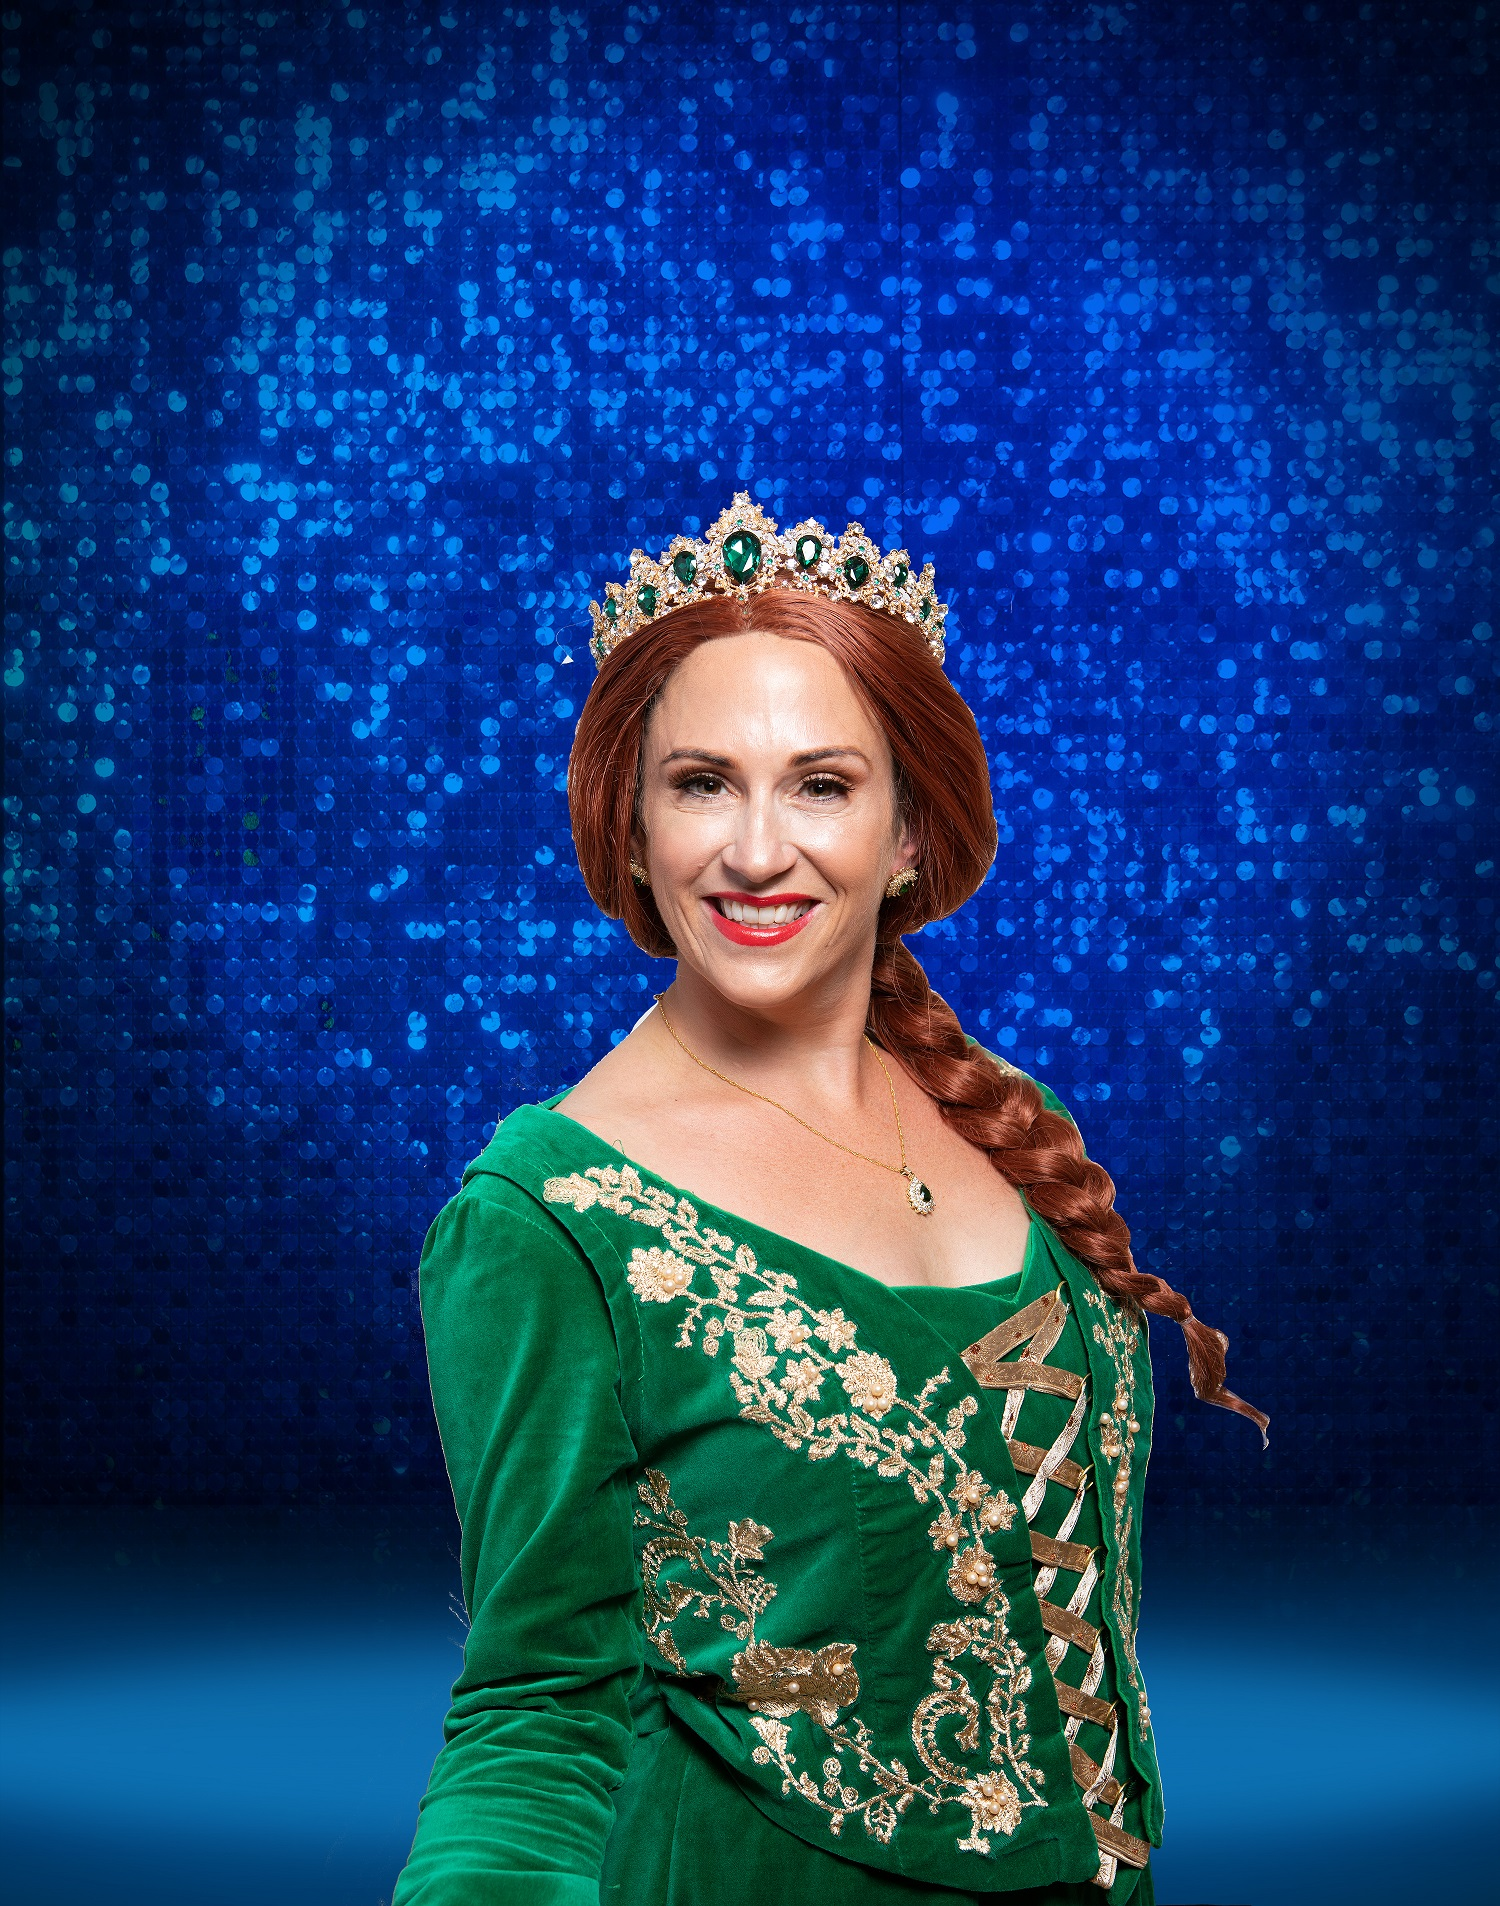 cast headshit of princess fiona, wearing crown and green gown, red hair in a long plait